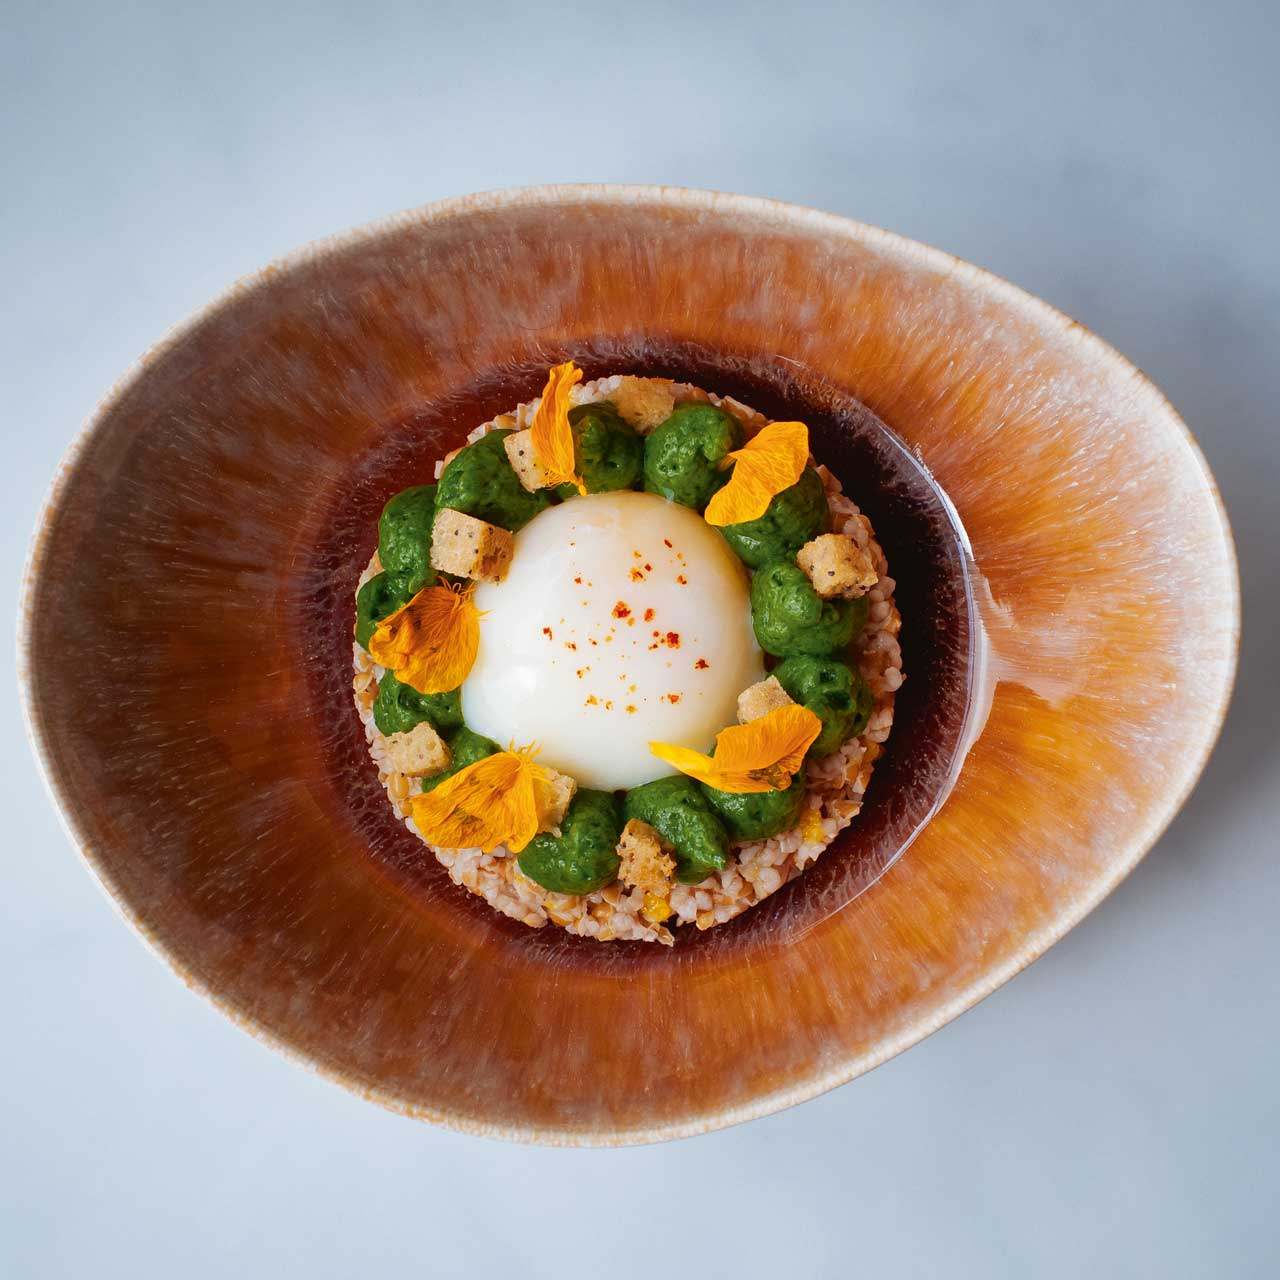 Oeuf parfait is one of Le Collectionneur's most eye-catching dishes